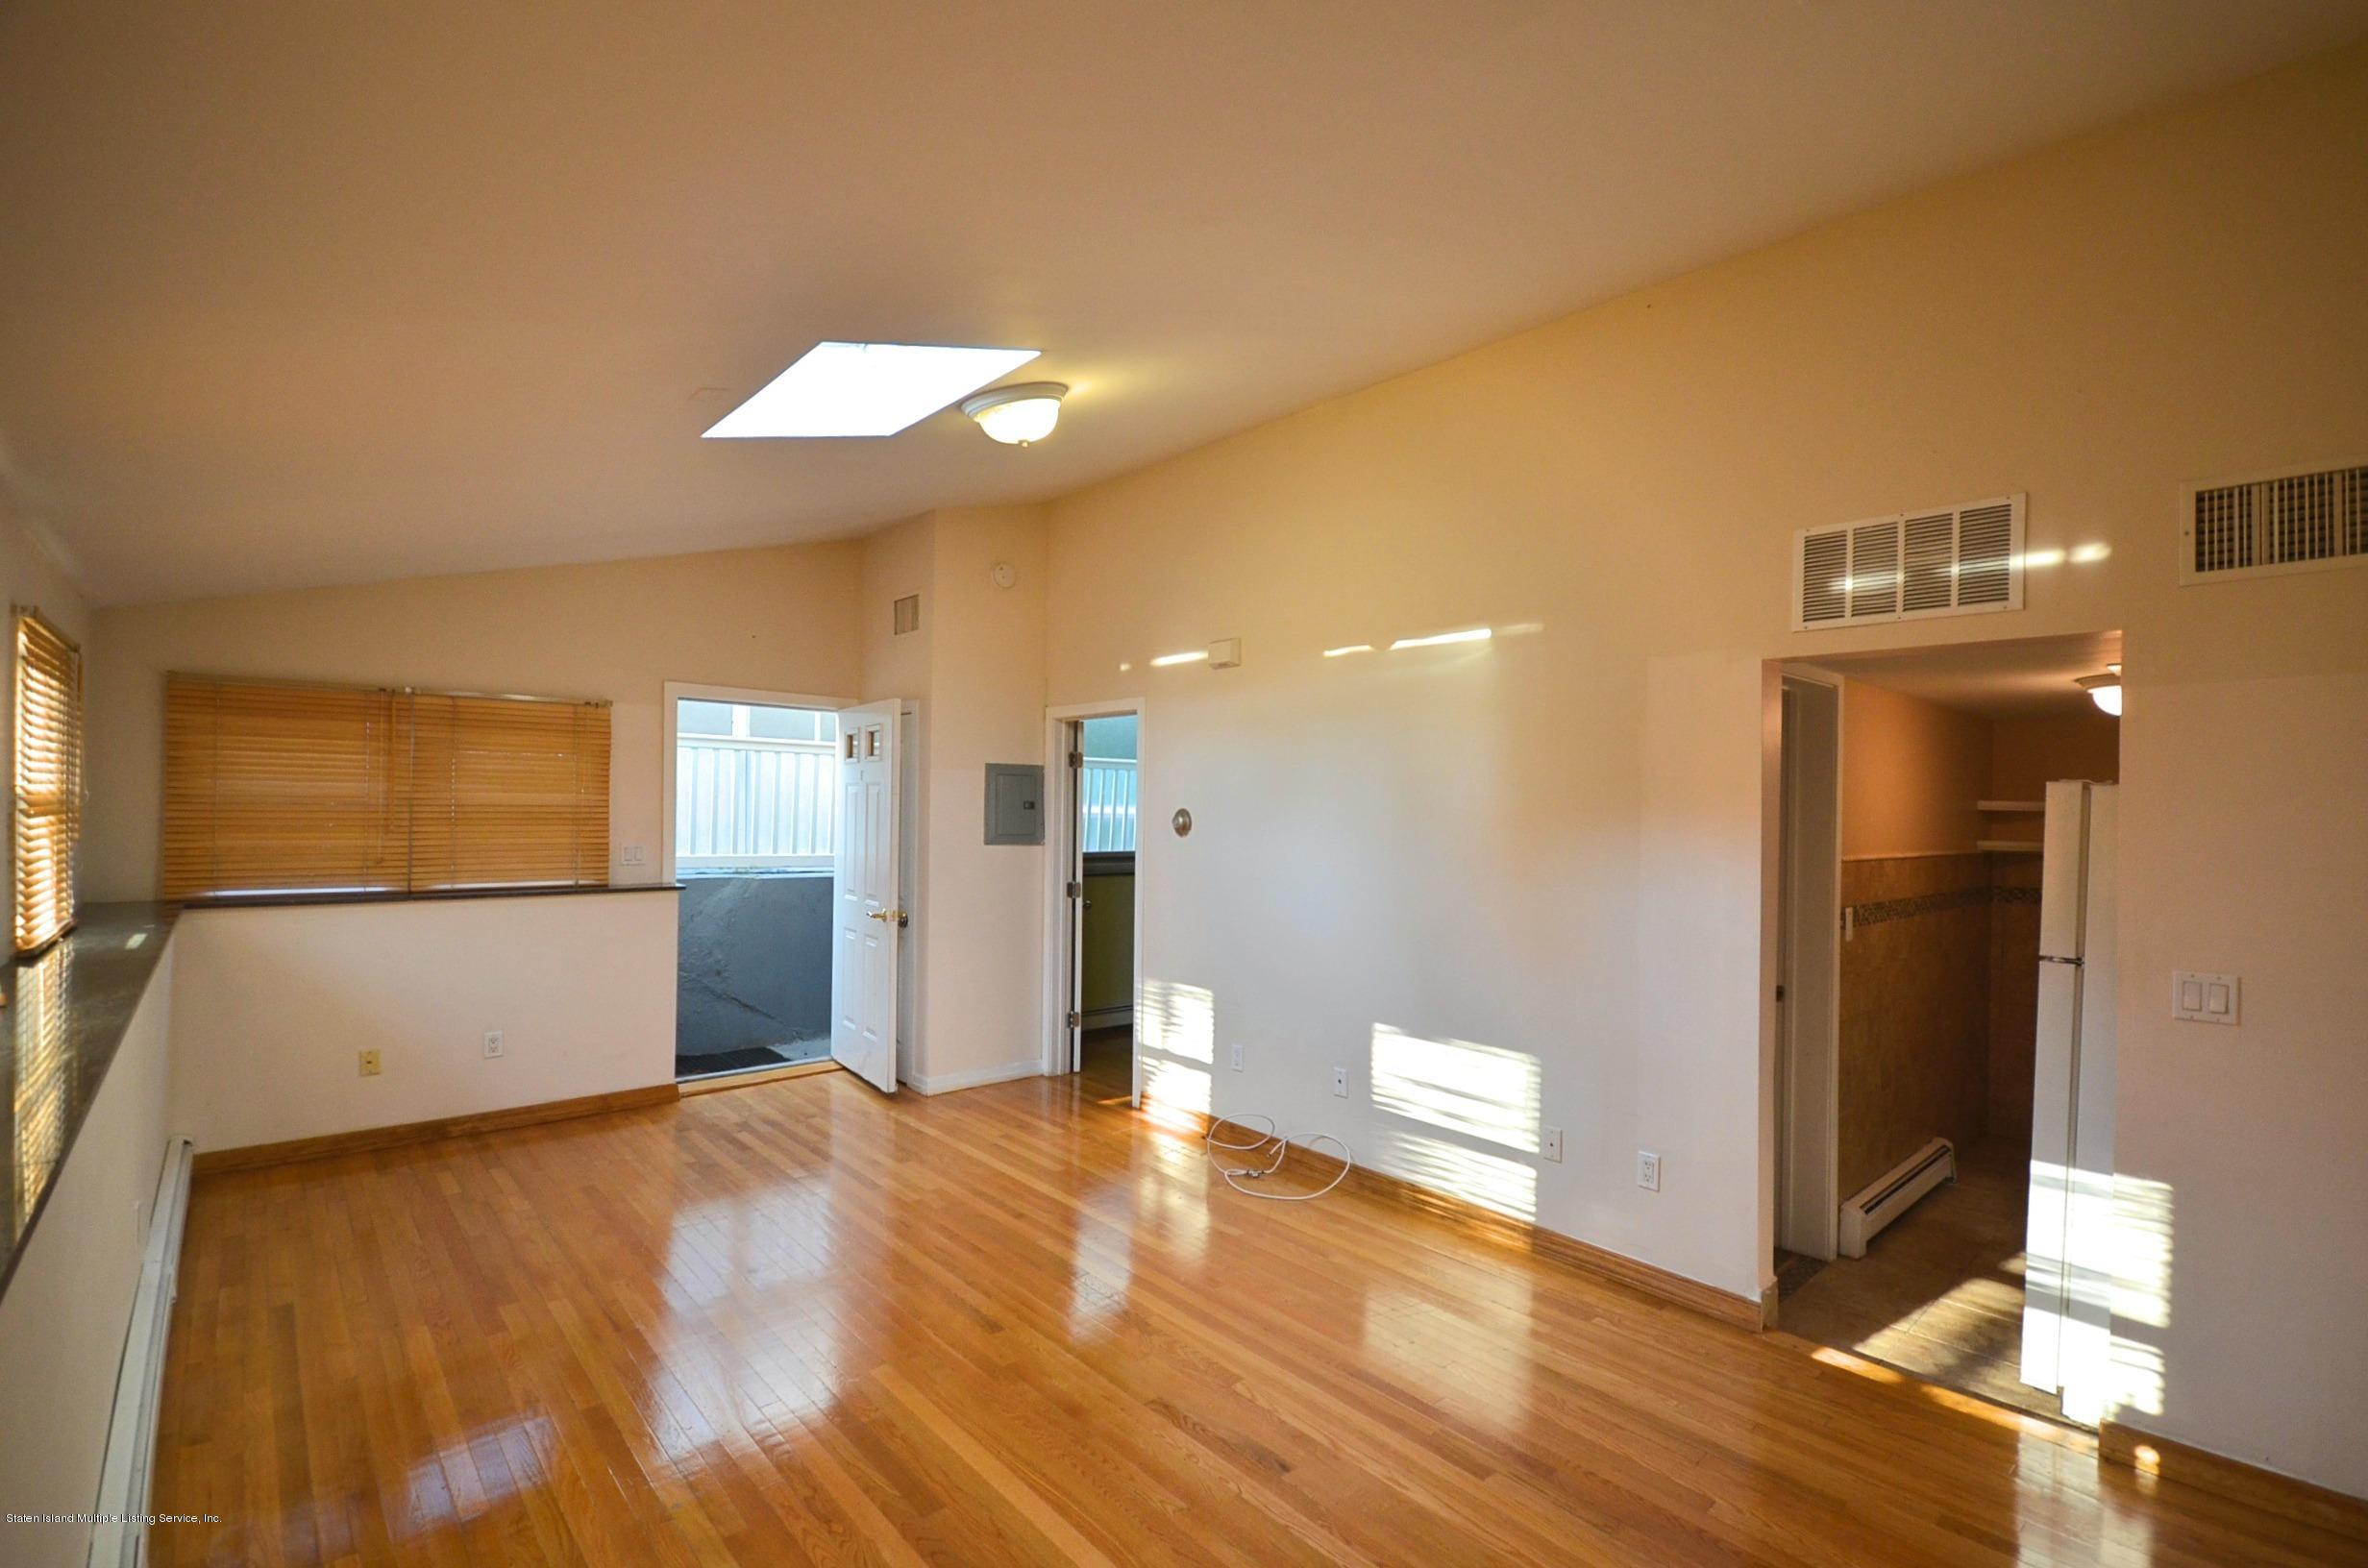 Two Family - Semi-Attached 984 Manor Road  Staten Island, NY 10314, MLS-1139616-28